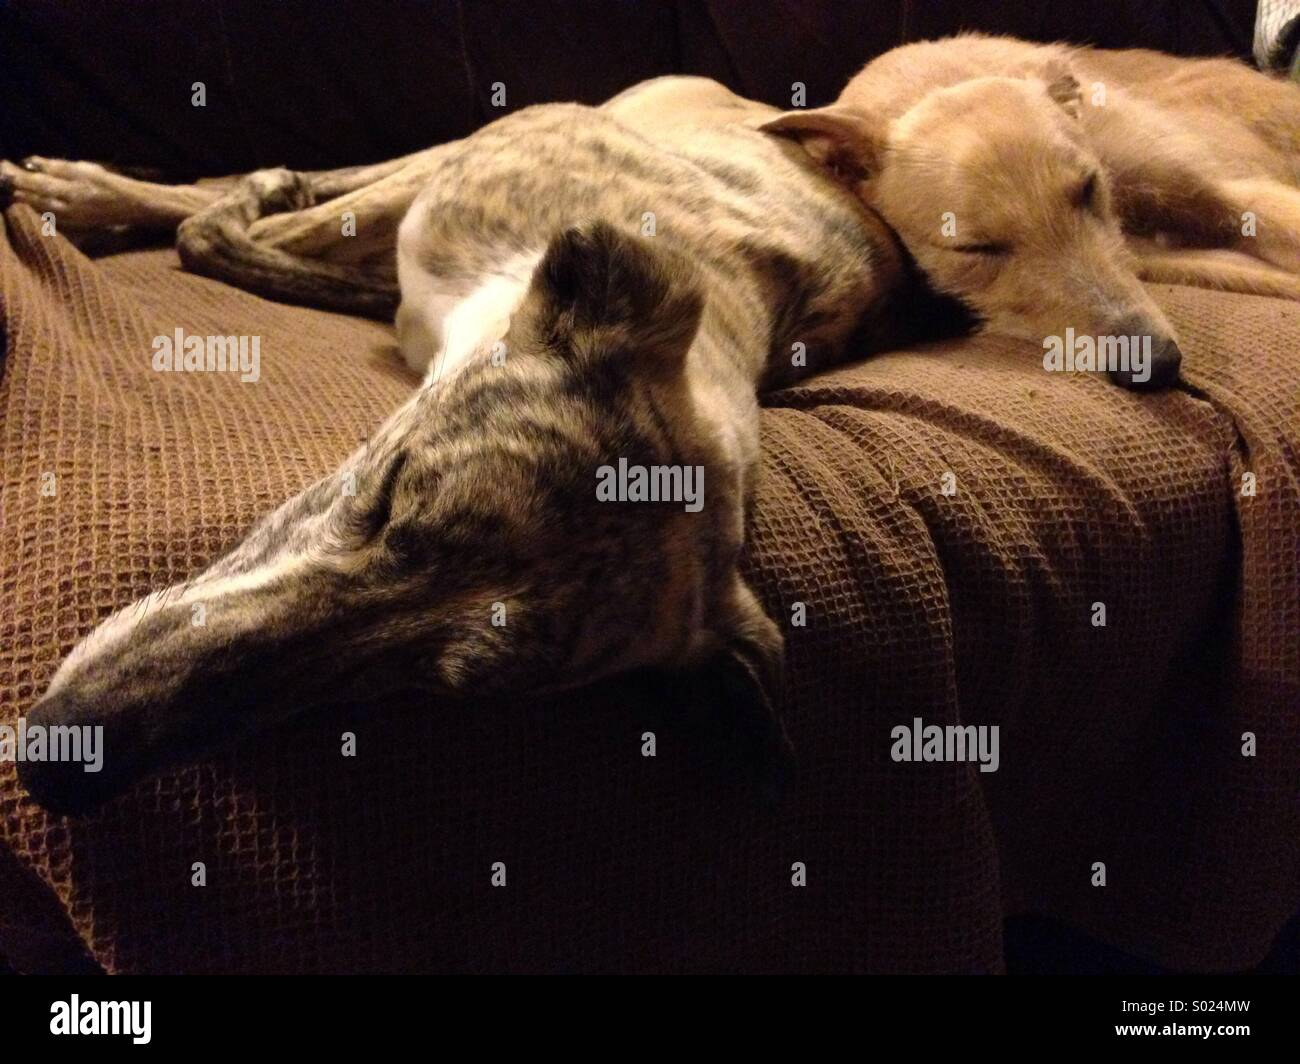 Two sleeping lurcher dogs - Stock Image